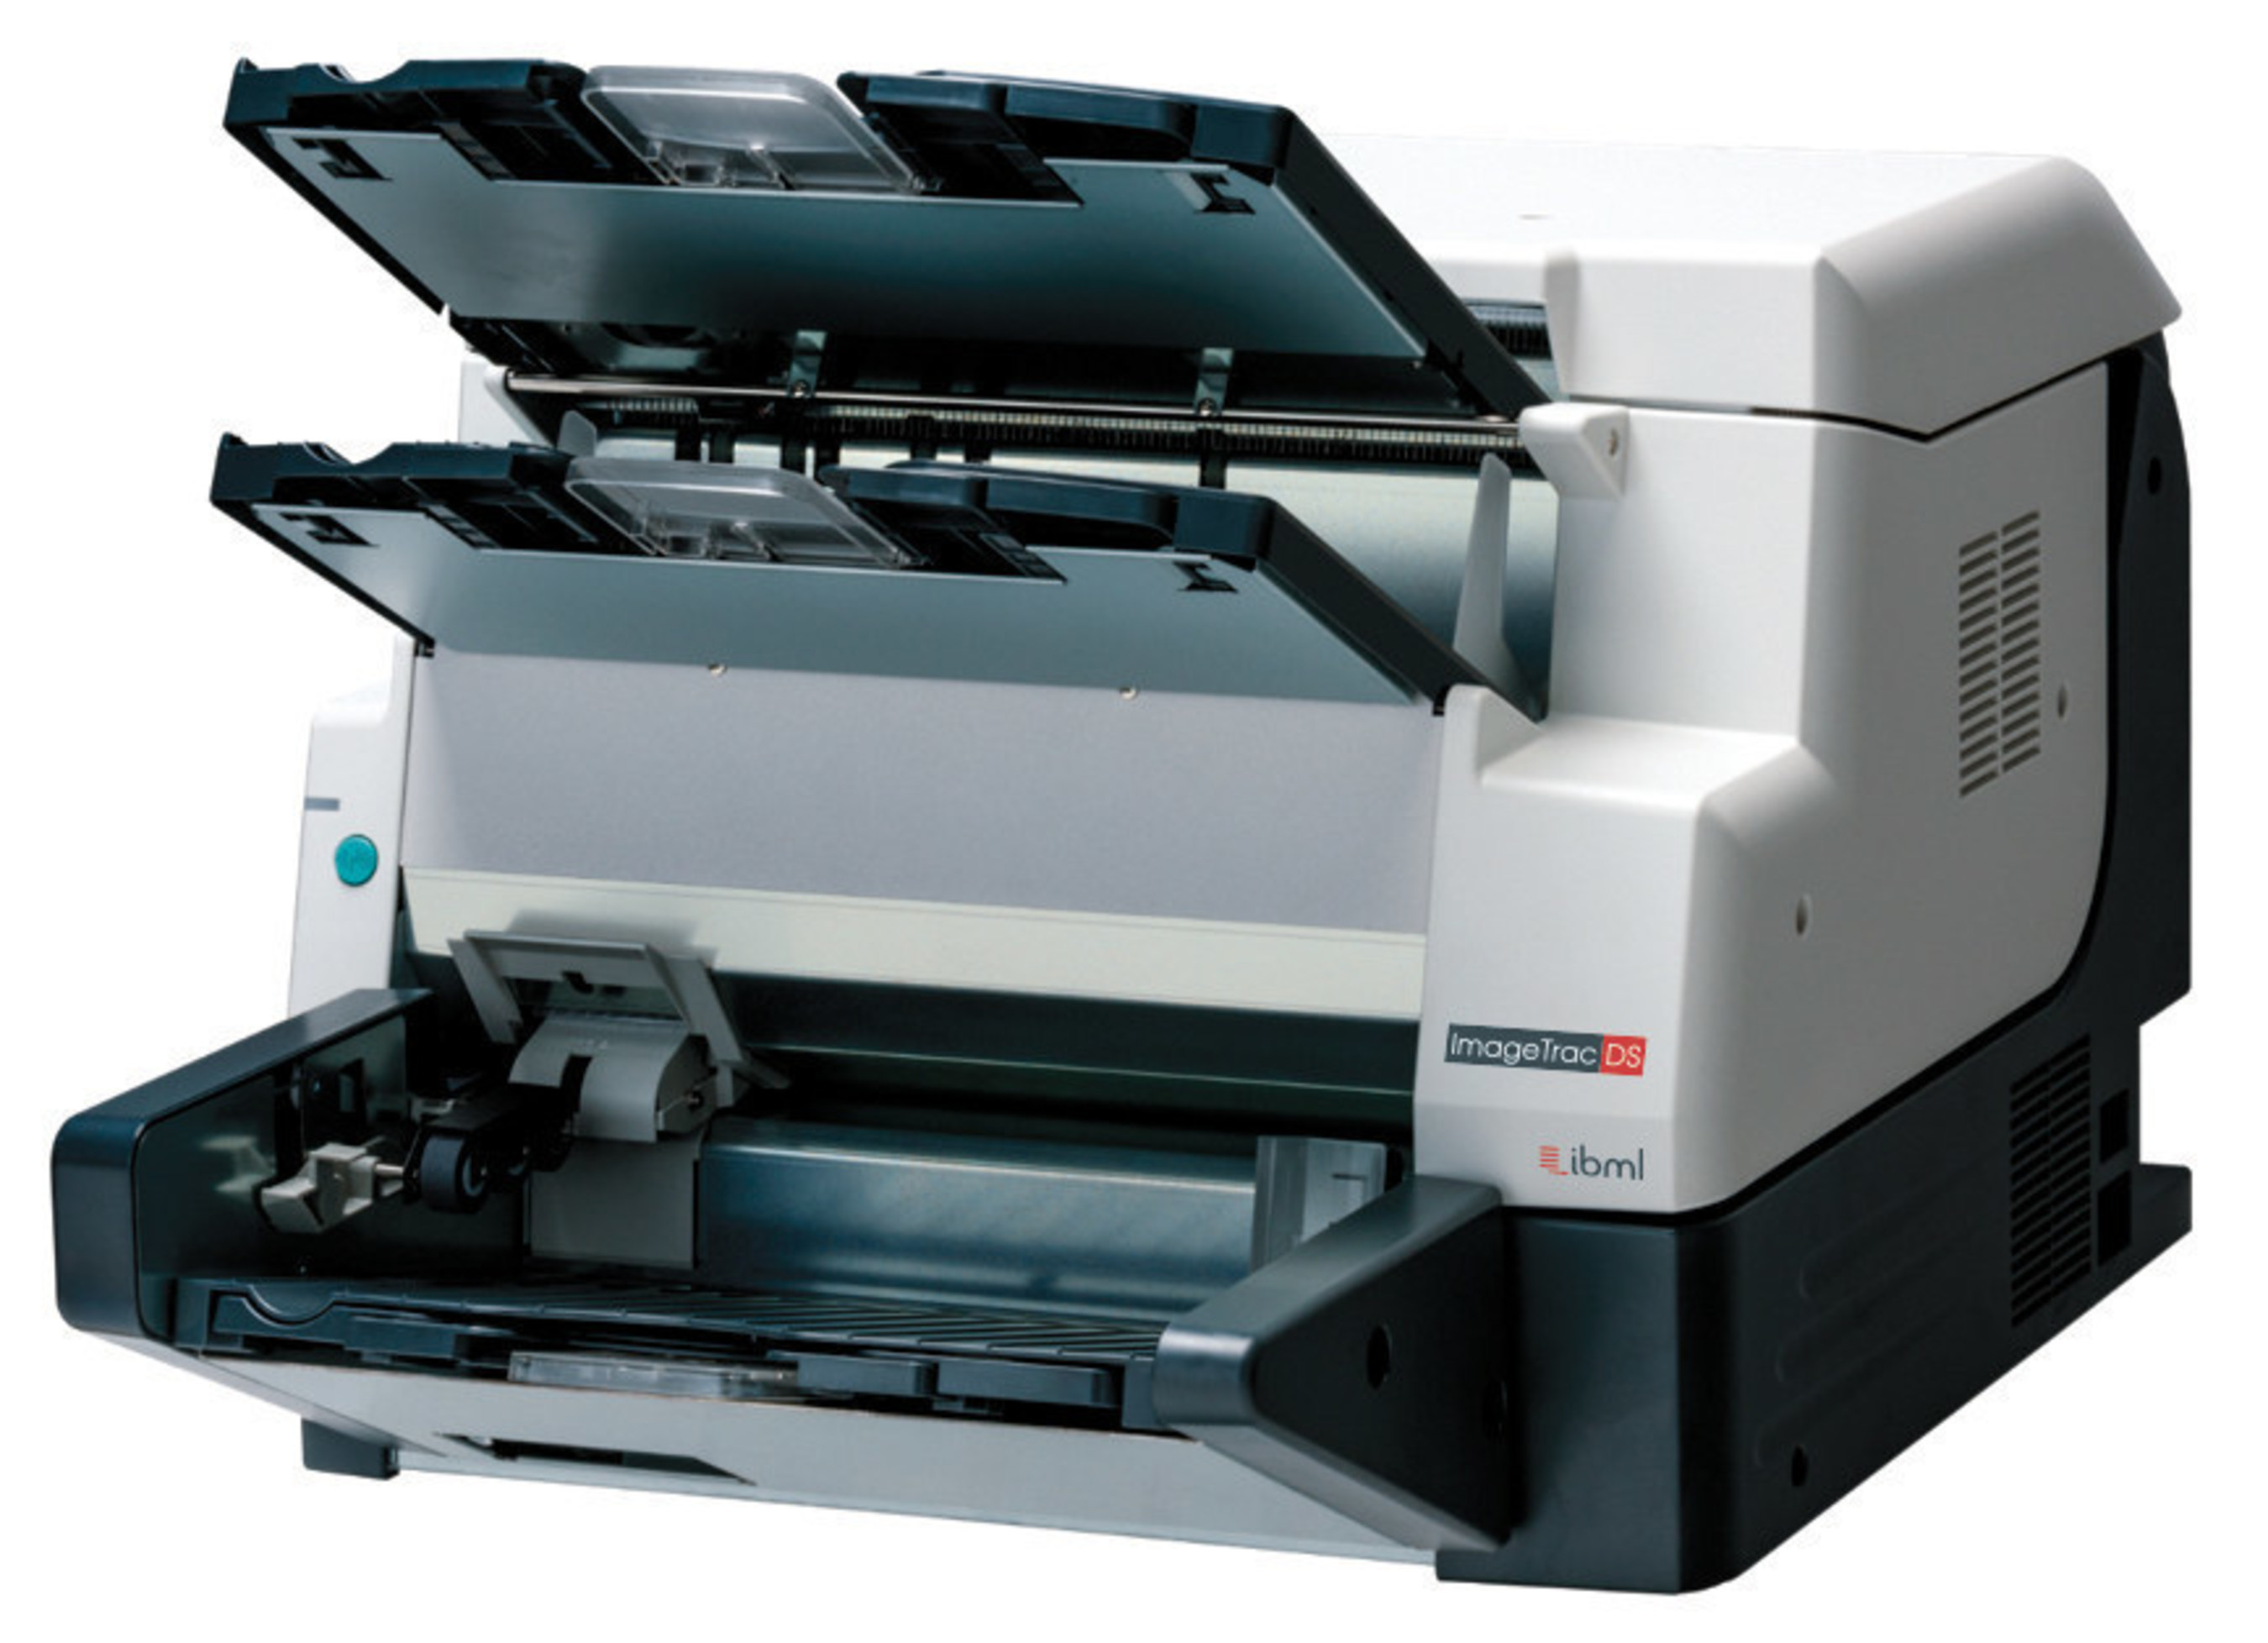 """The ImageTracDS 1210 is a desktop scanner capable of sustained processing of 18"""" ballots at 6,000 ballots per hour and small-format 2D barcoded ballots at speeds over 15,000 ballots per hour."""